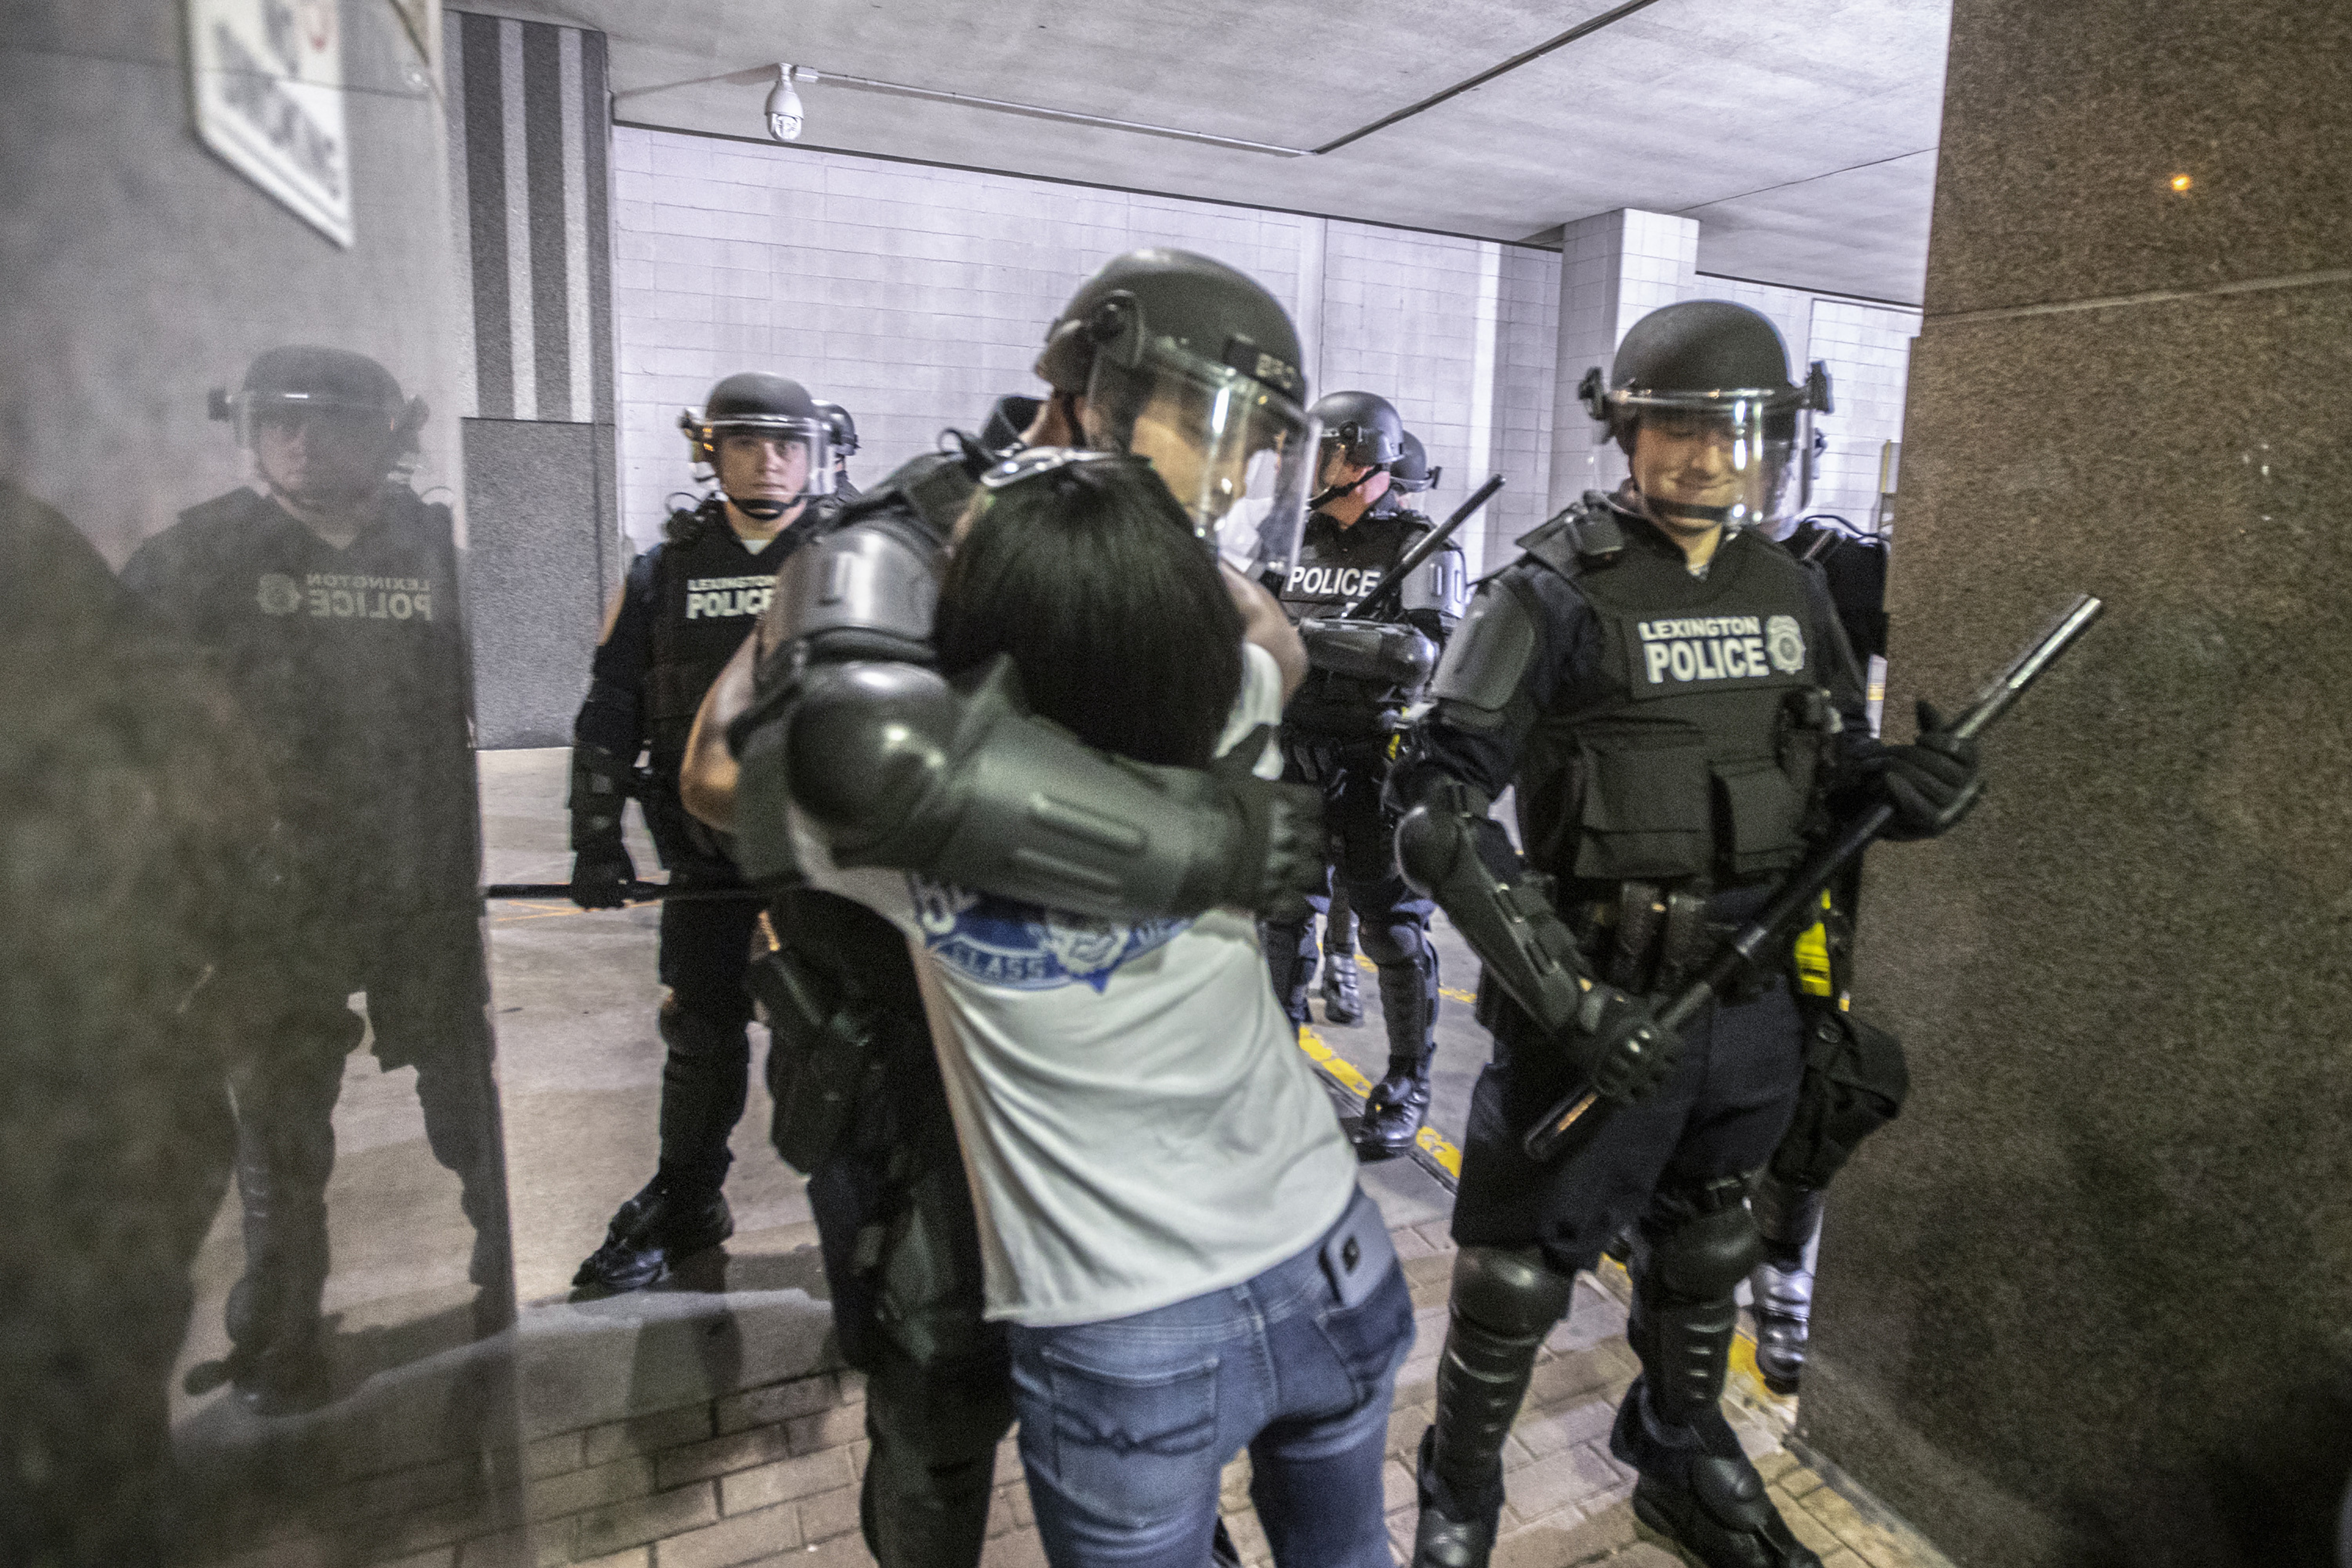 """A protester hugs a police officer who kneeled after protesters attending a rally against the deaths of George Floyd and Breonna Taylor chanted """"Kneel with us! Kneel with us!"""" in Lexington, Ky., on Sunday, May 31, 2020. (Ryan C. Hermens/Lexington Herald-Leader via AP)"""